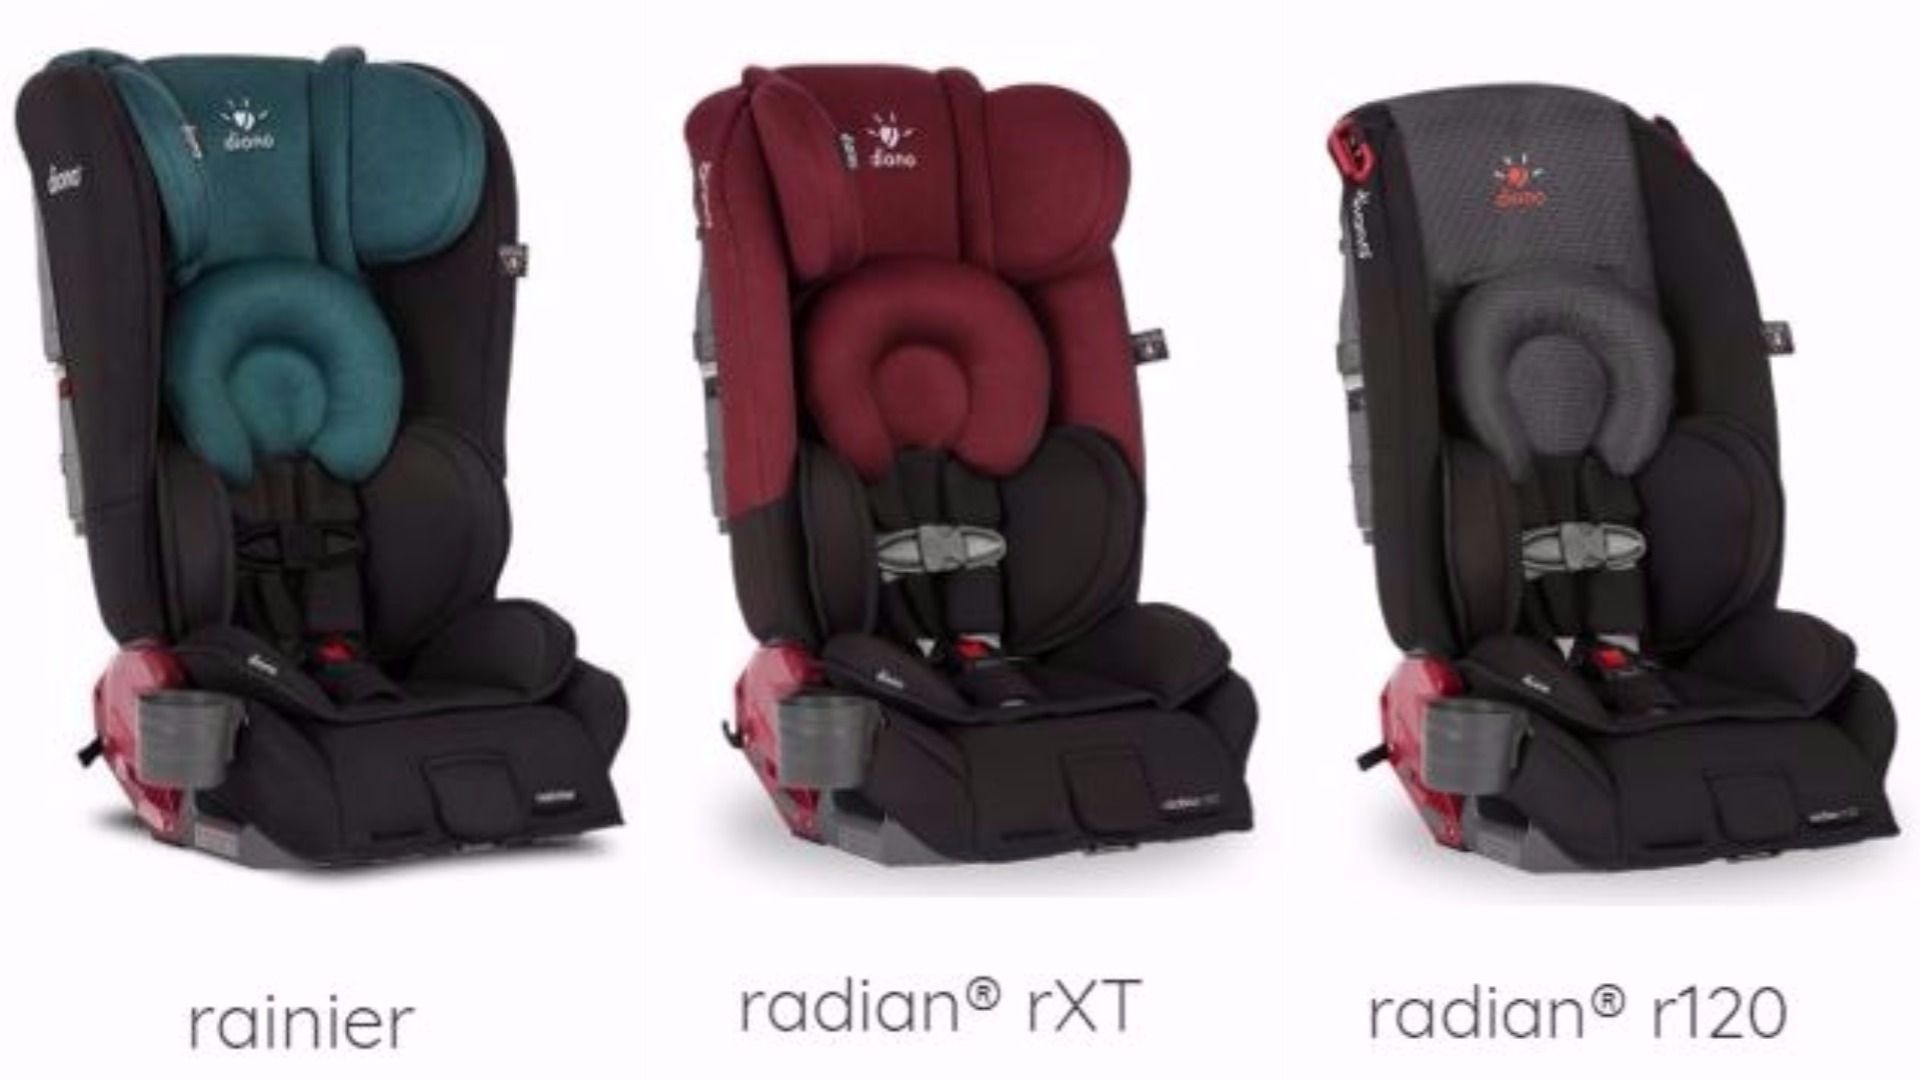 diono car seats recalled may not protect kids in crash ktvb com. Black Bedroom Furniture Sets. Home Design Ideas